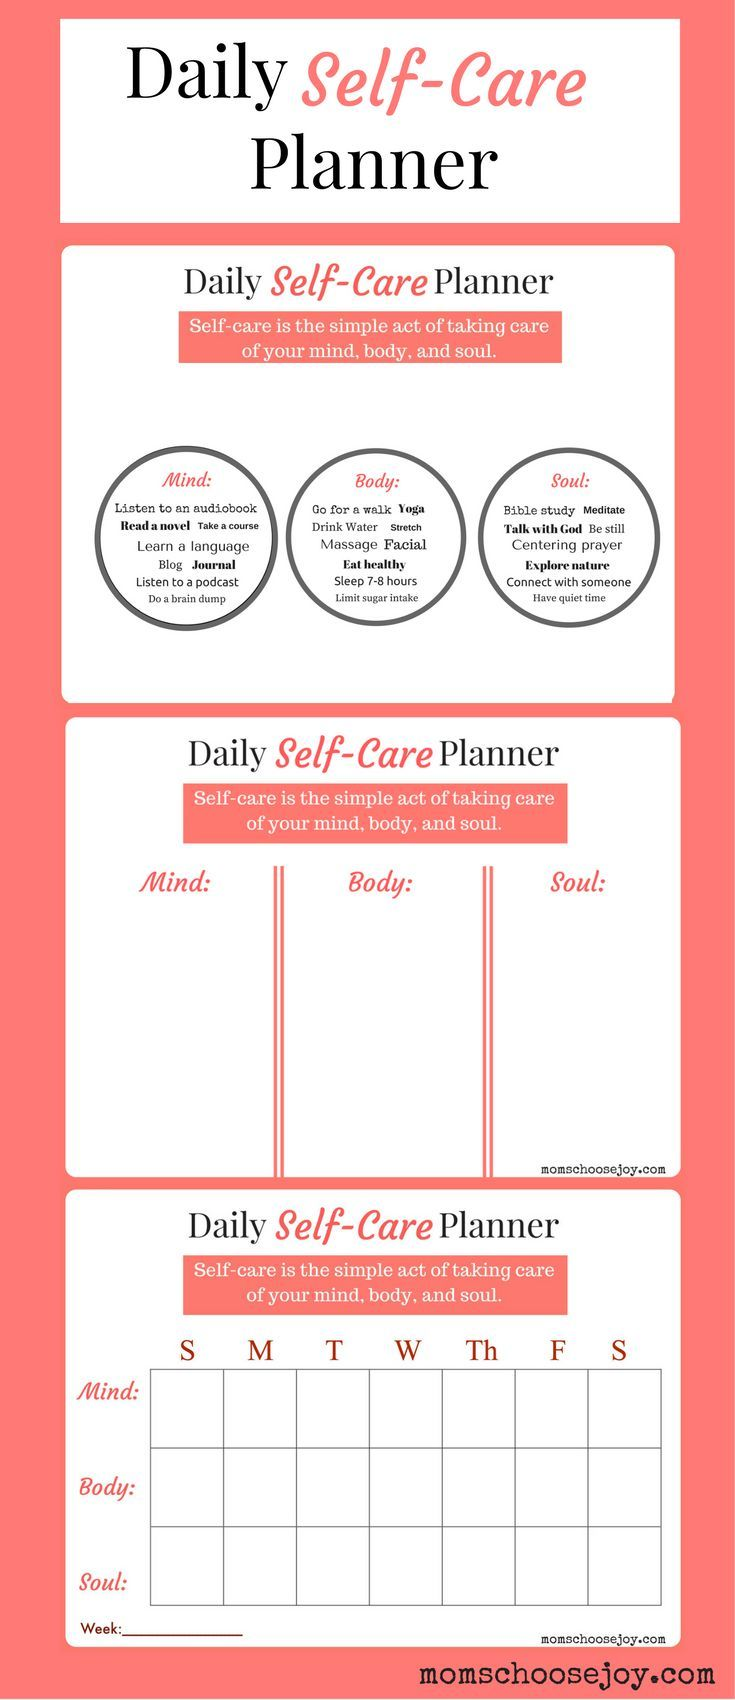 Do you prioritize self care a daily self care planner will help you do you prioritize self care a daily self care planner will help you establish a routine to refresh and rejuvenate your mind body and soul each day solutioingenieria Gallery